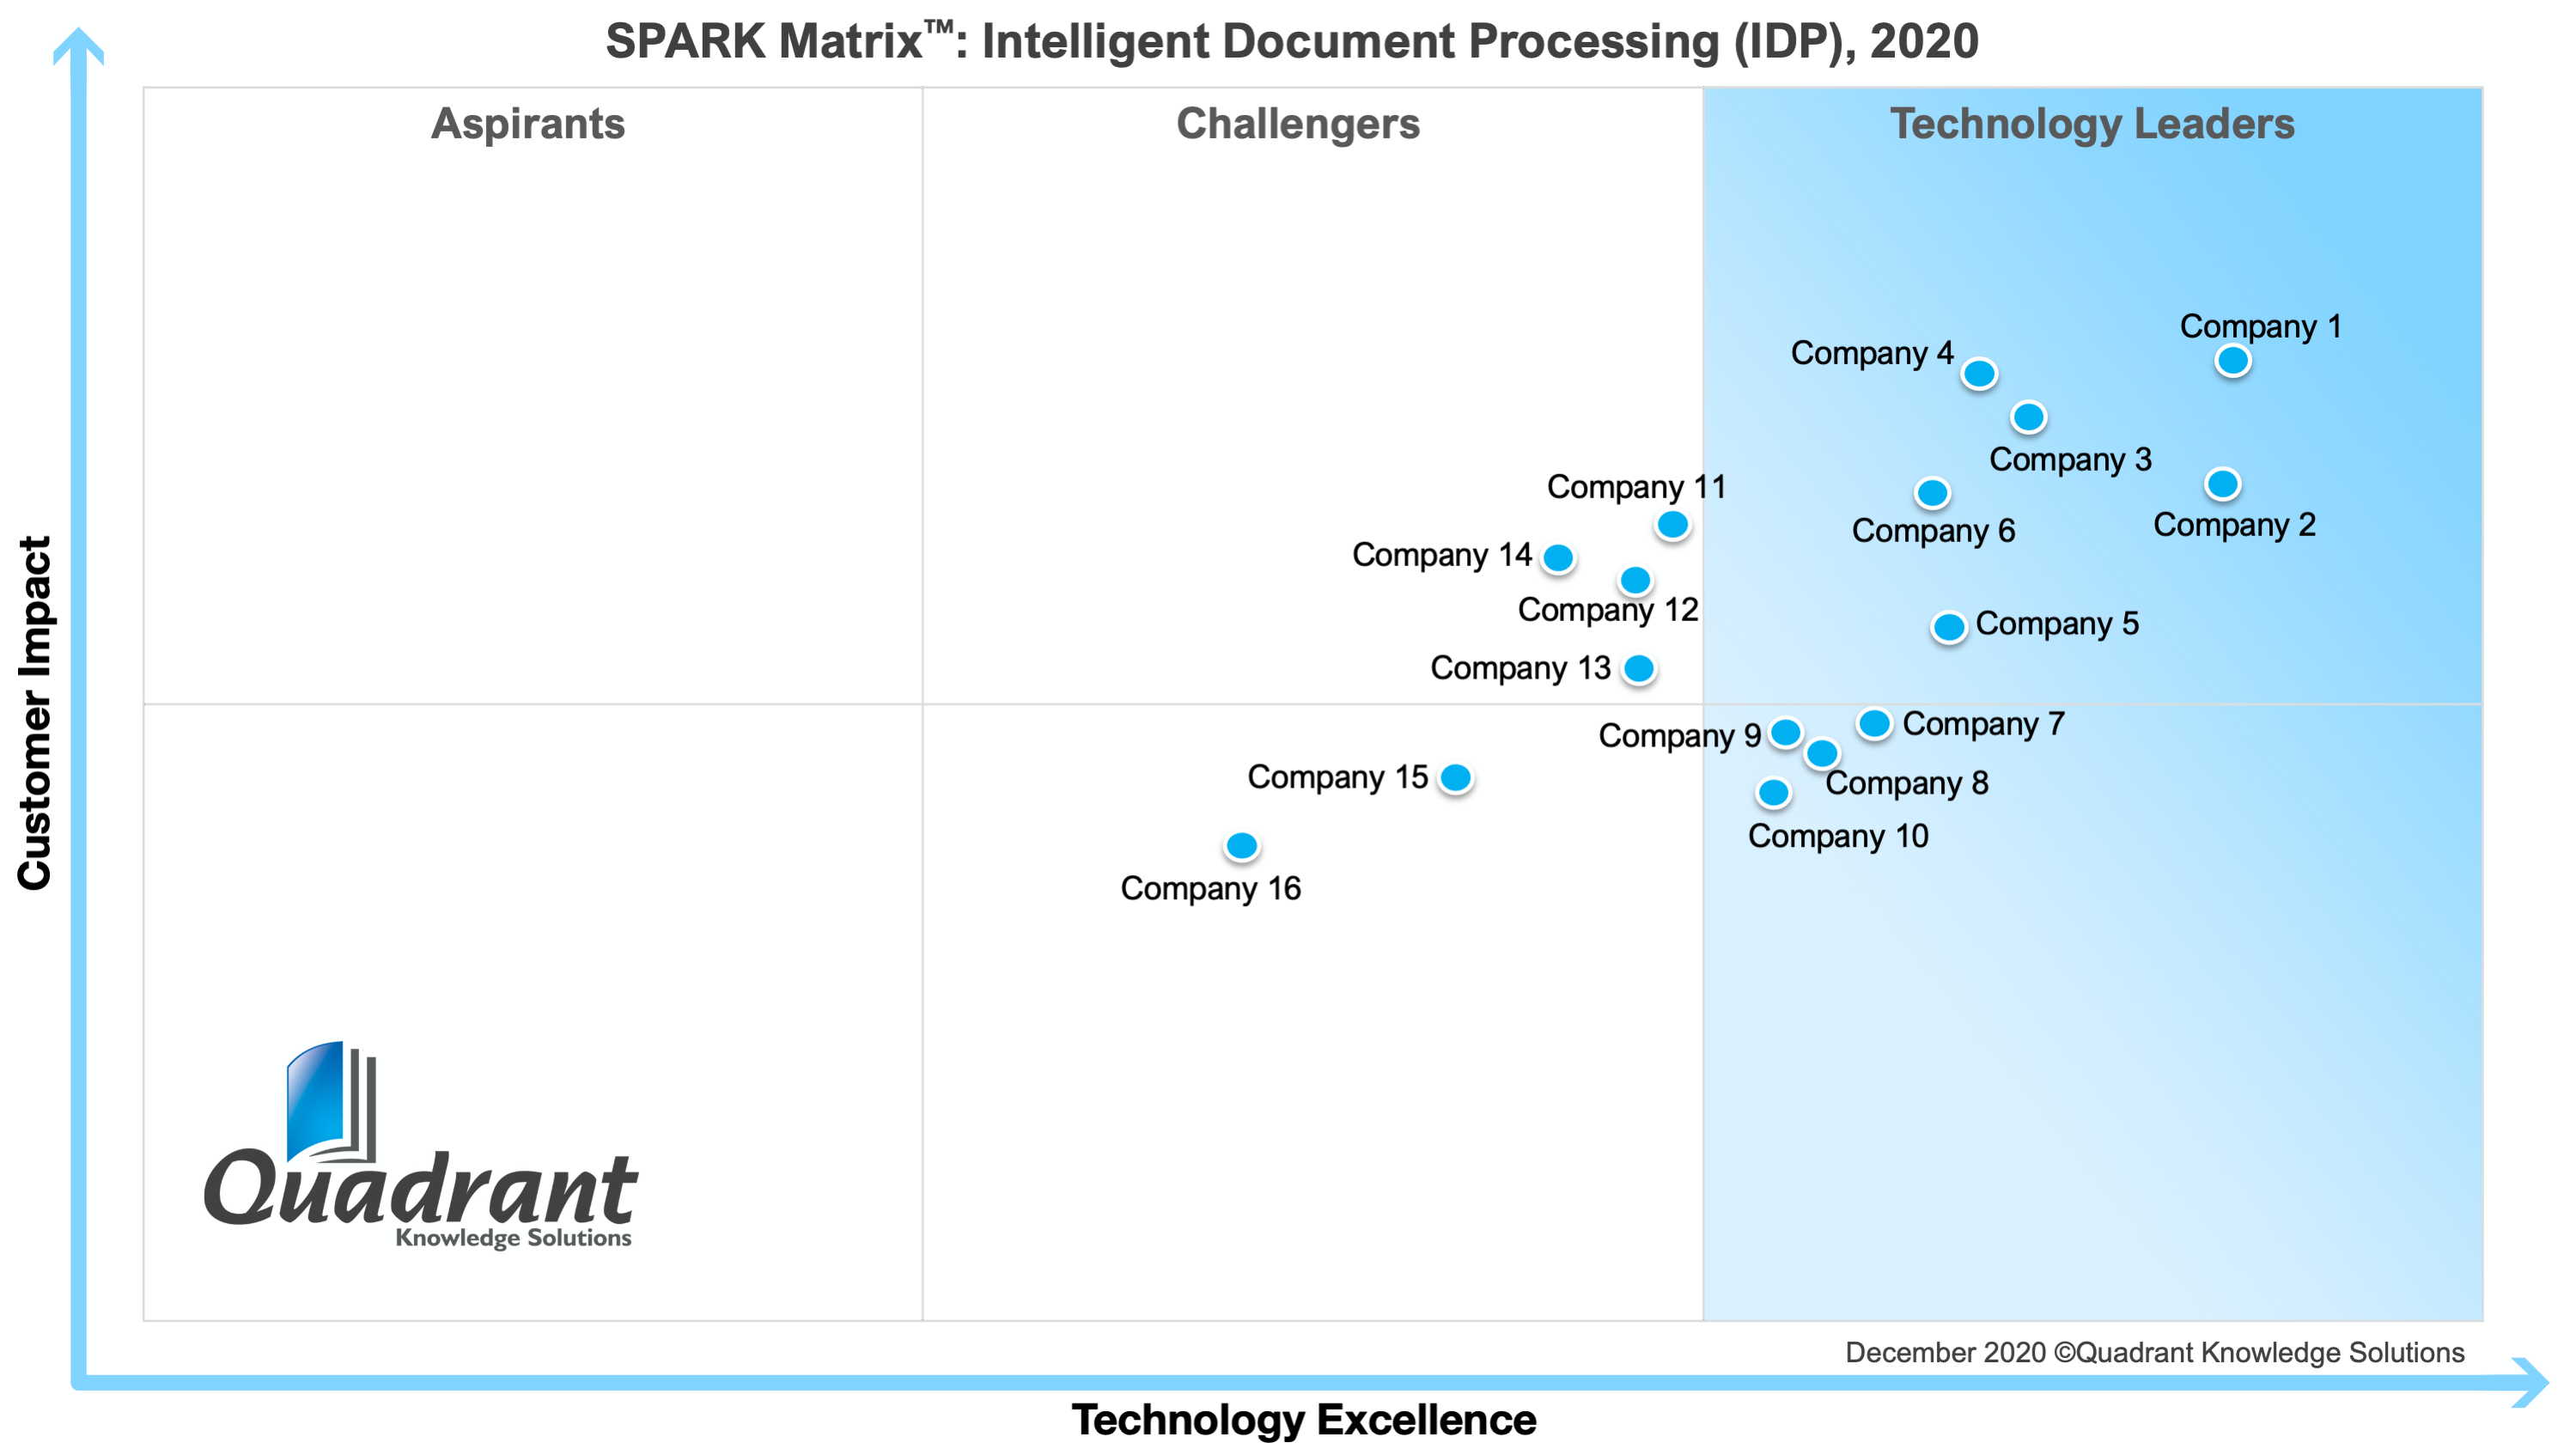 202SPARK Matrix Intelligent Document Processing IDP Quadrant Knowledge Solutions